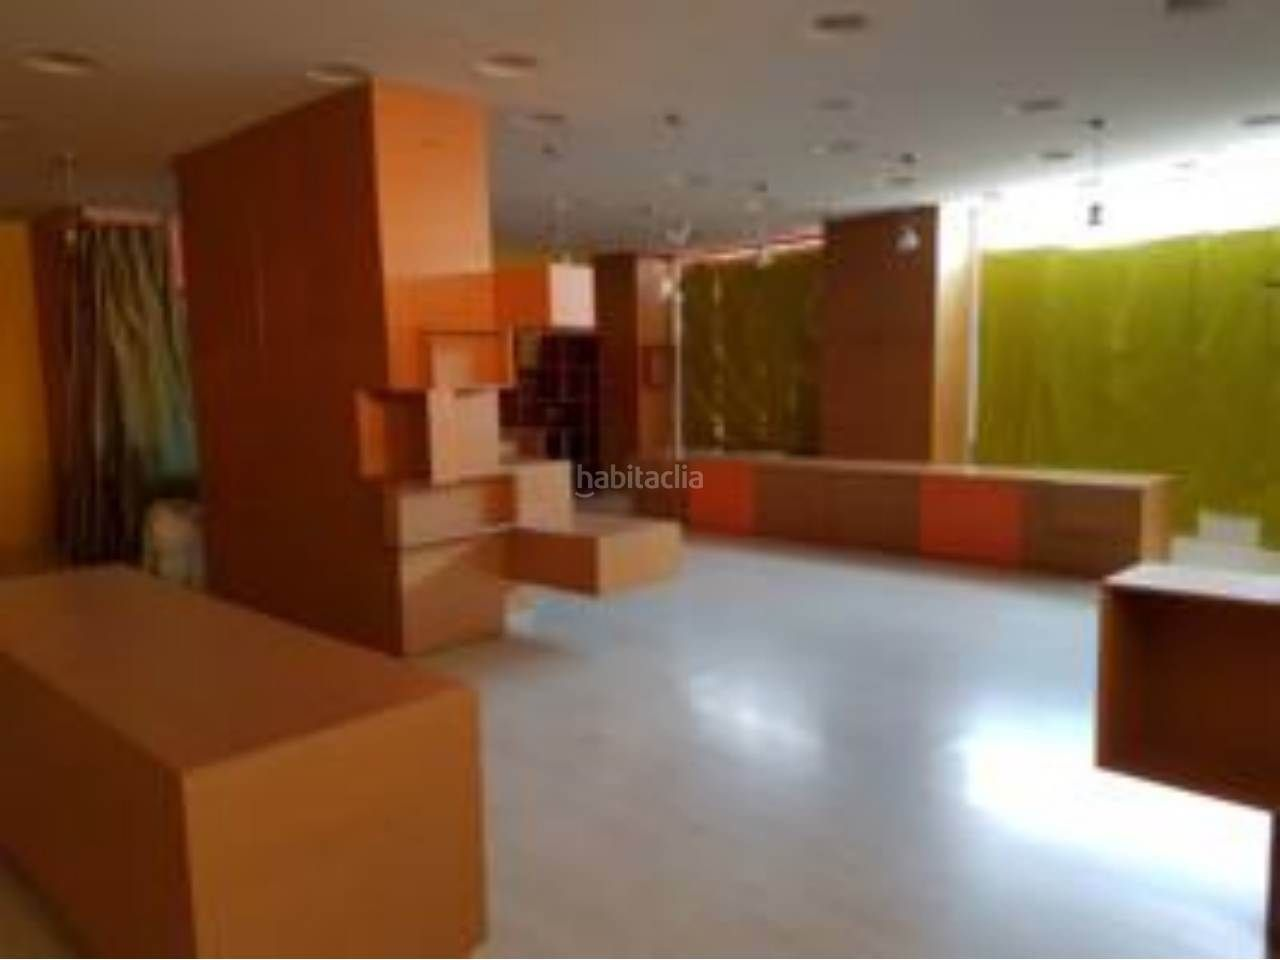 Local Comercial en Tona. Local comercial en alquiler